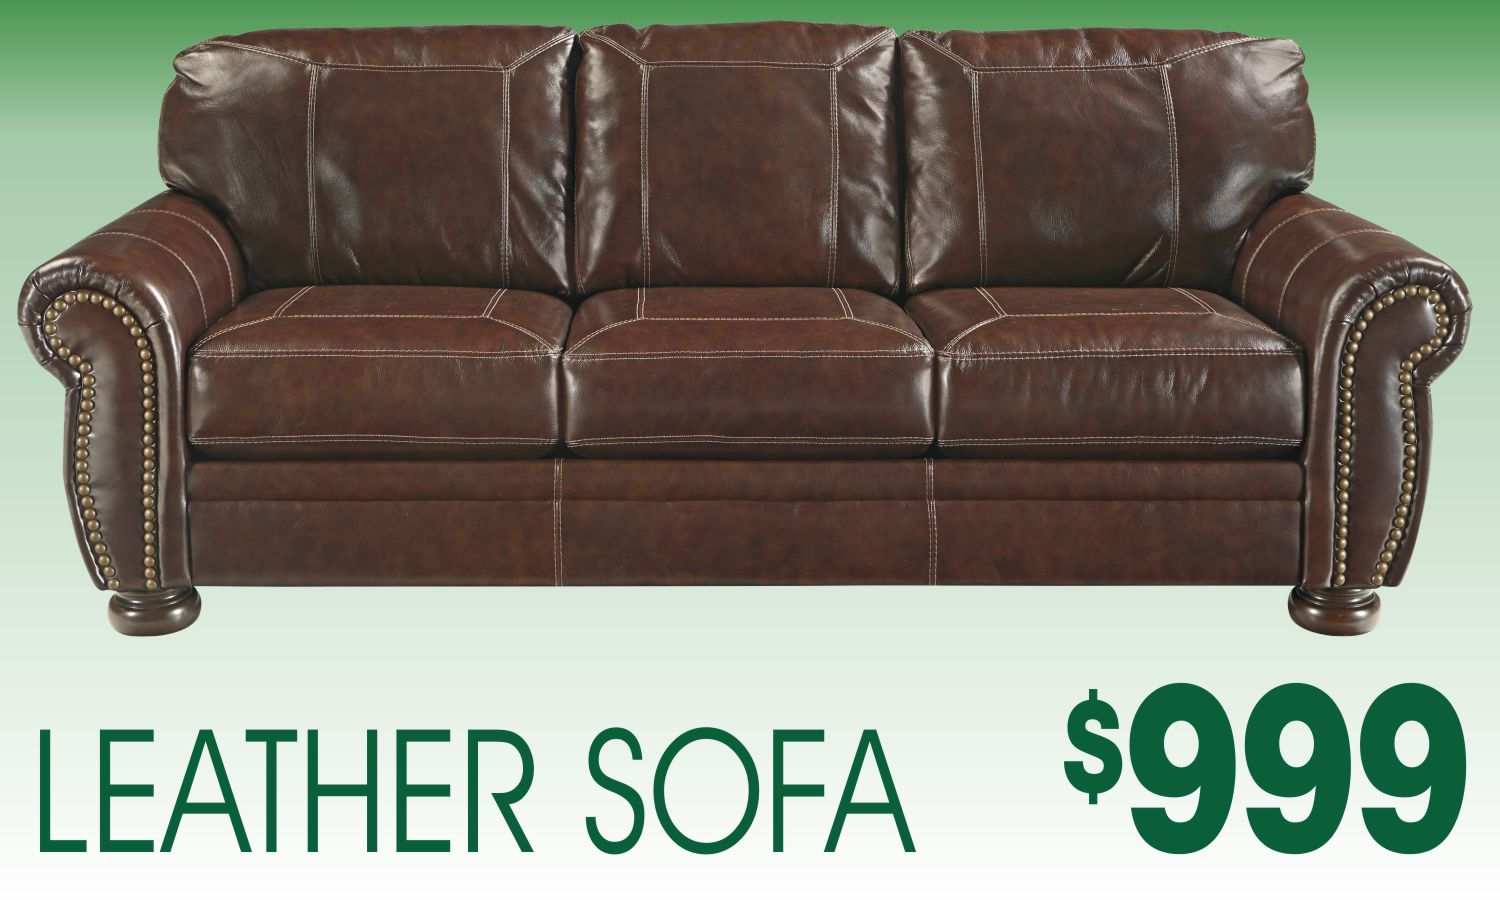 Leather Sofa-5